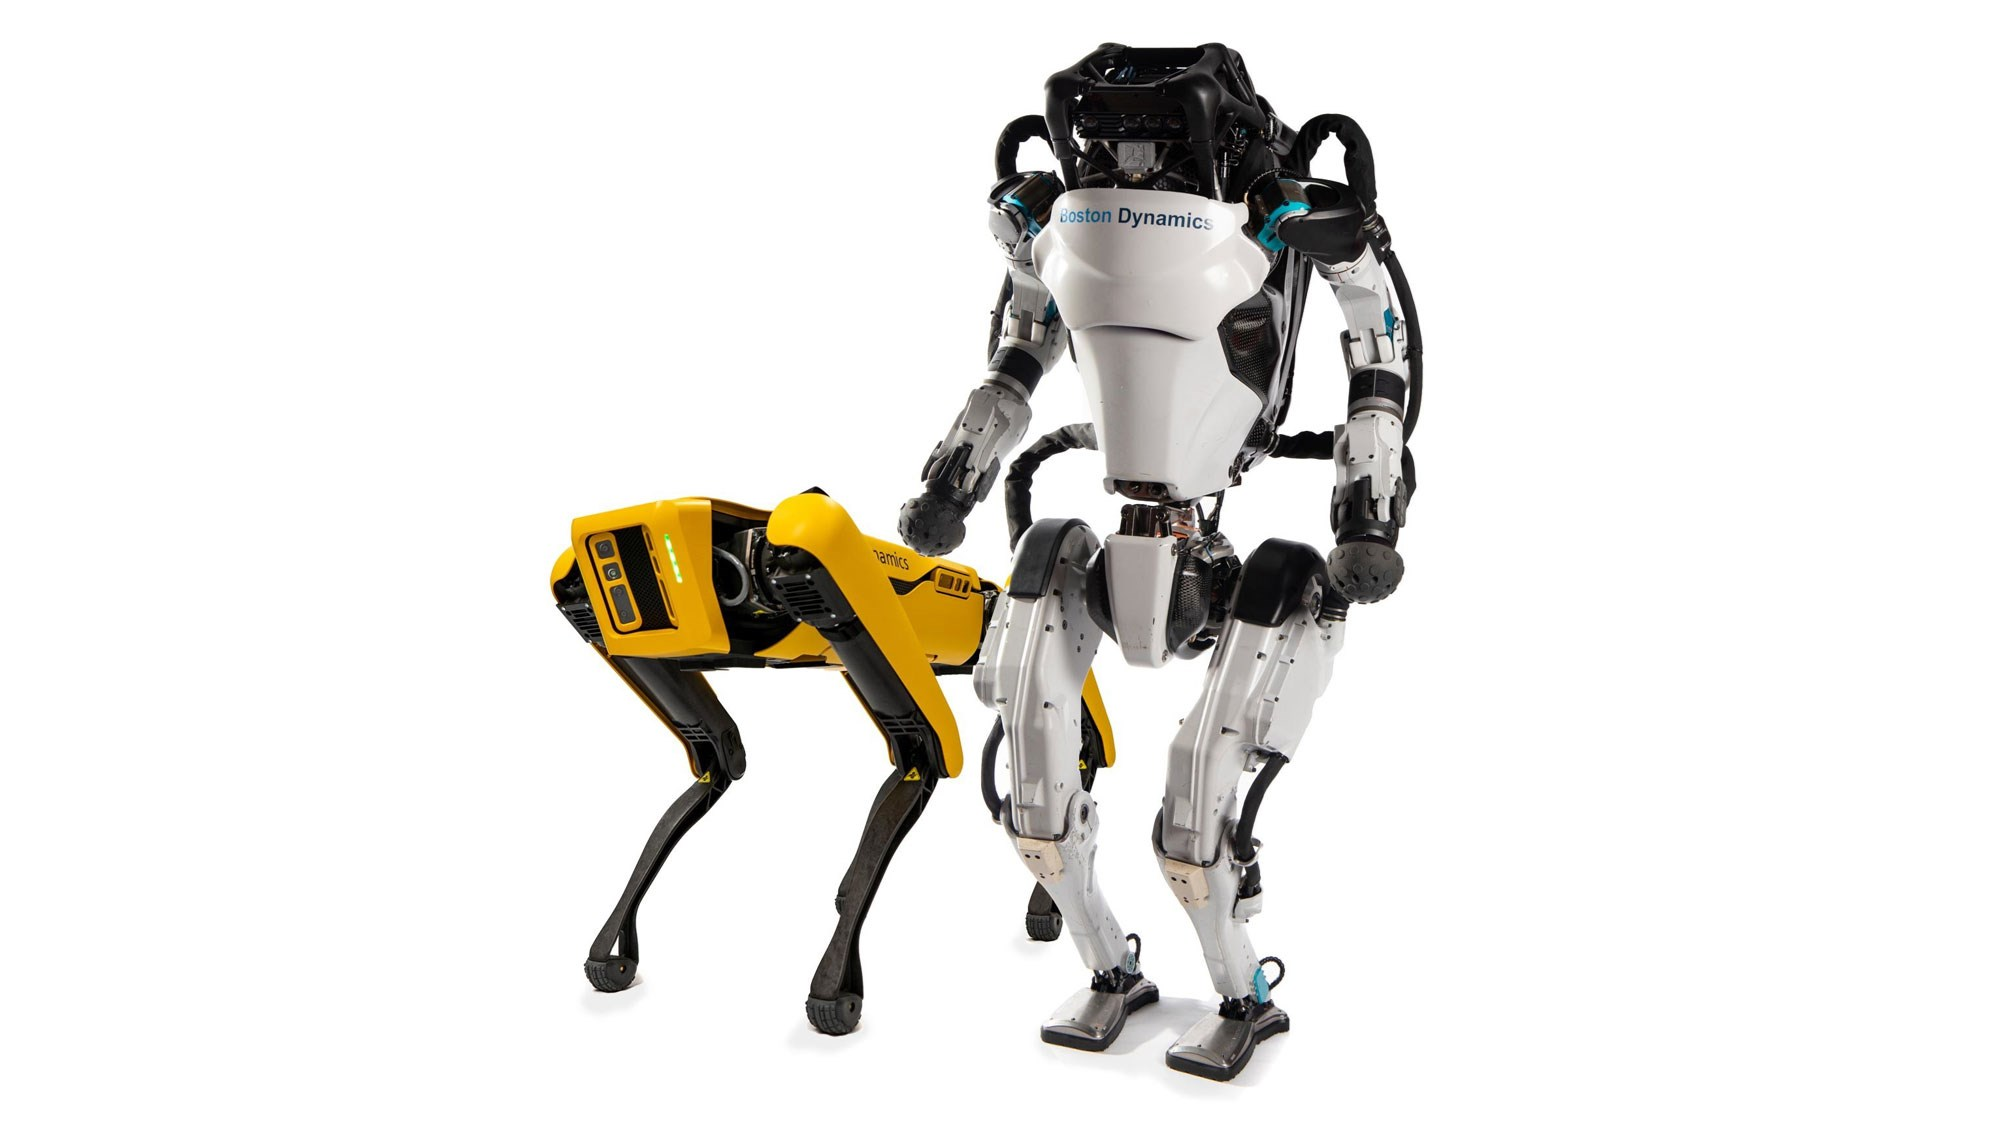 Hyundai Takes Control Of Boston Dynamics, Makers Of Ford Factory Robots